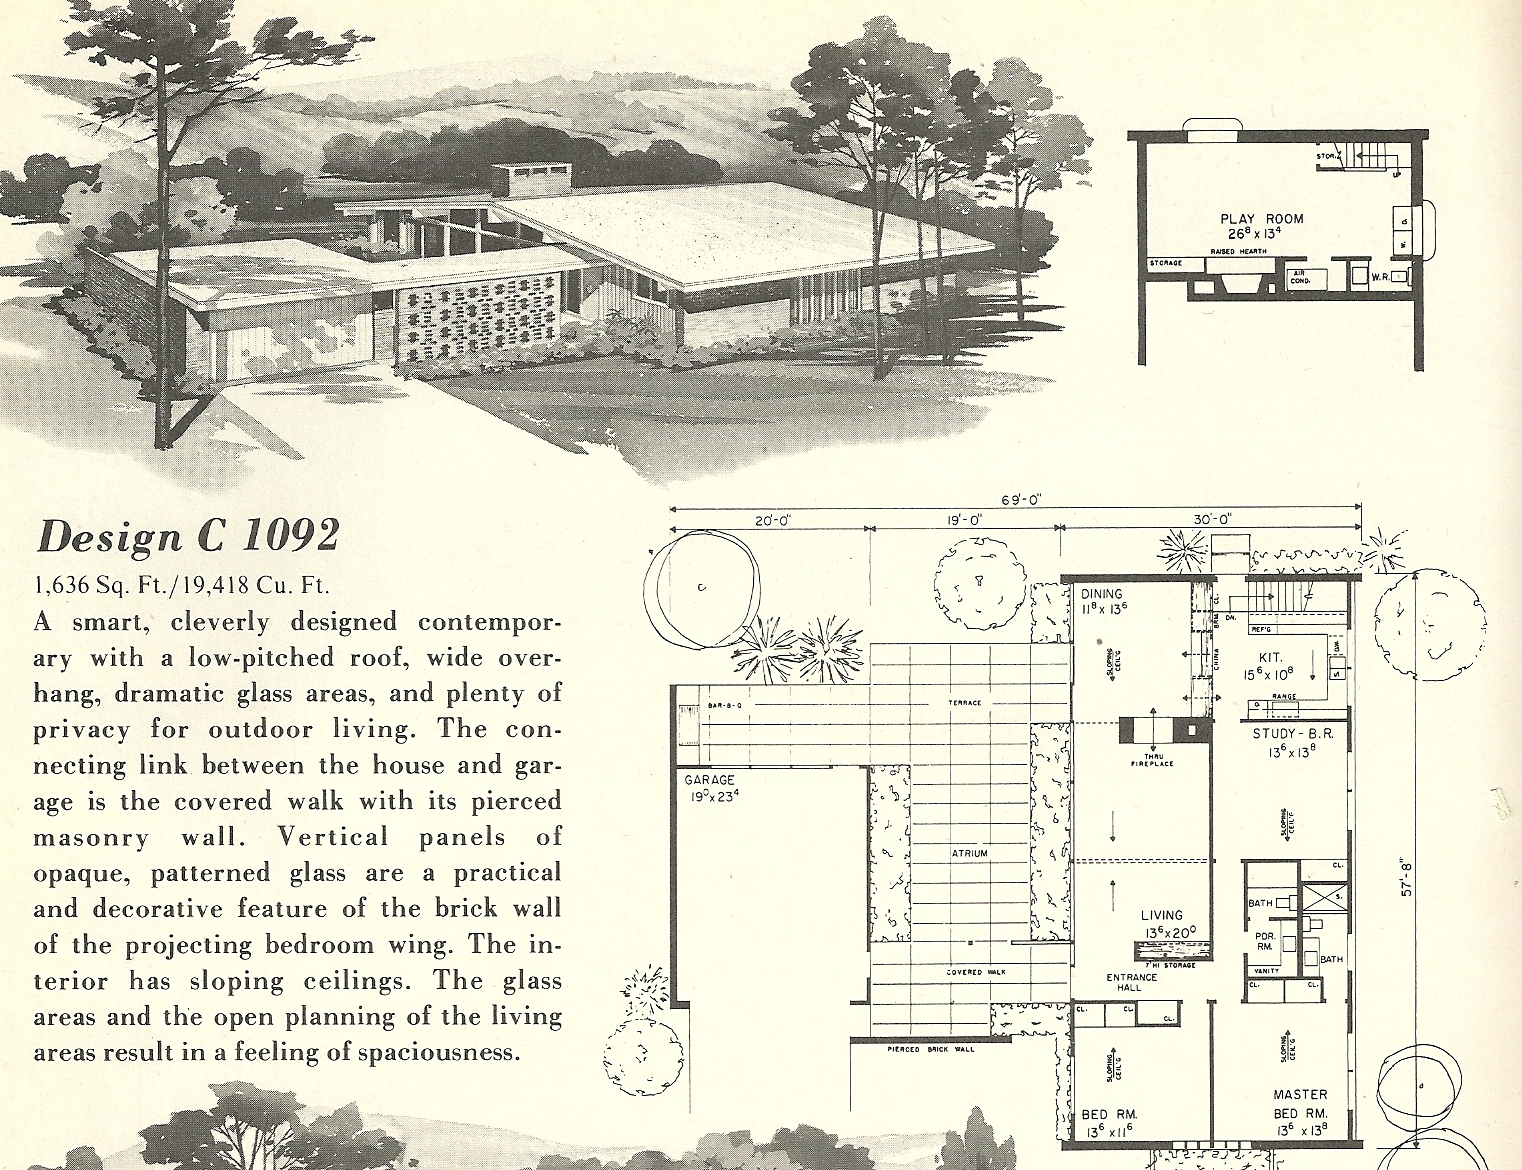 Vintage house plans 1092 antique alter ego for Vintage home plans